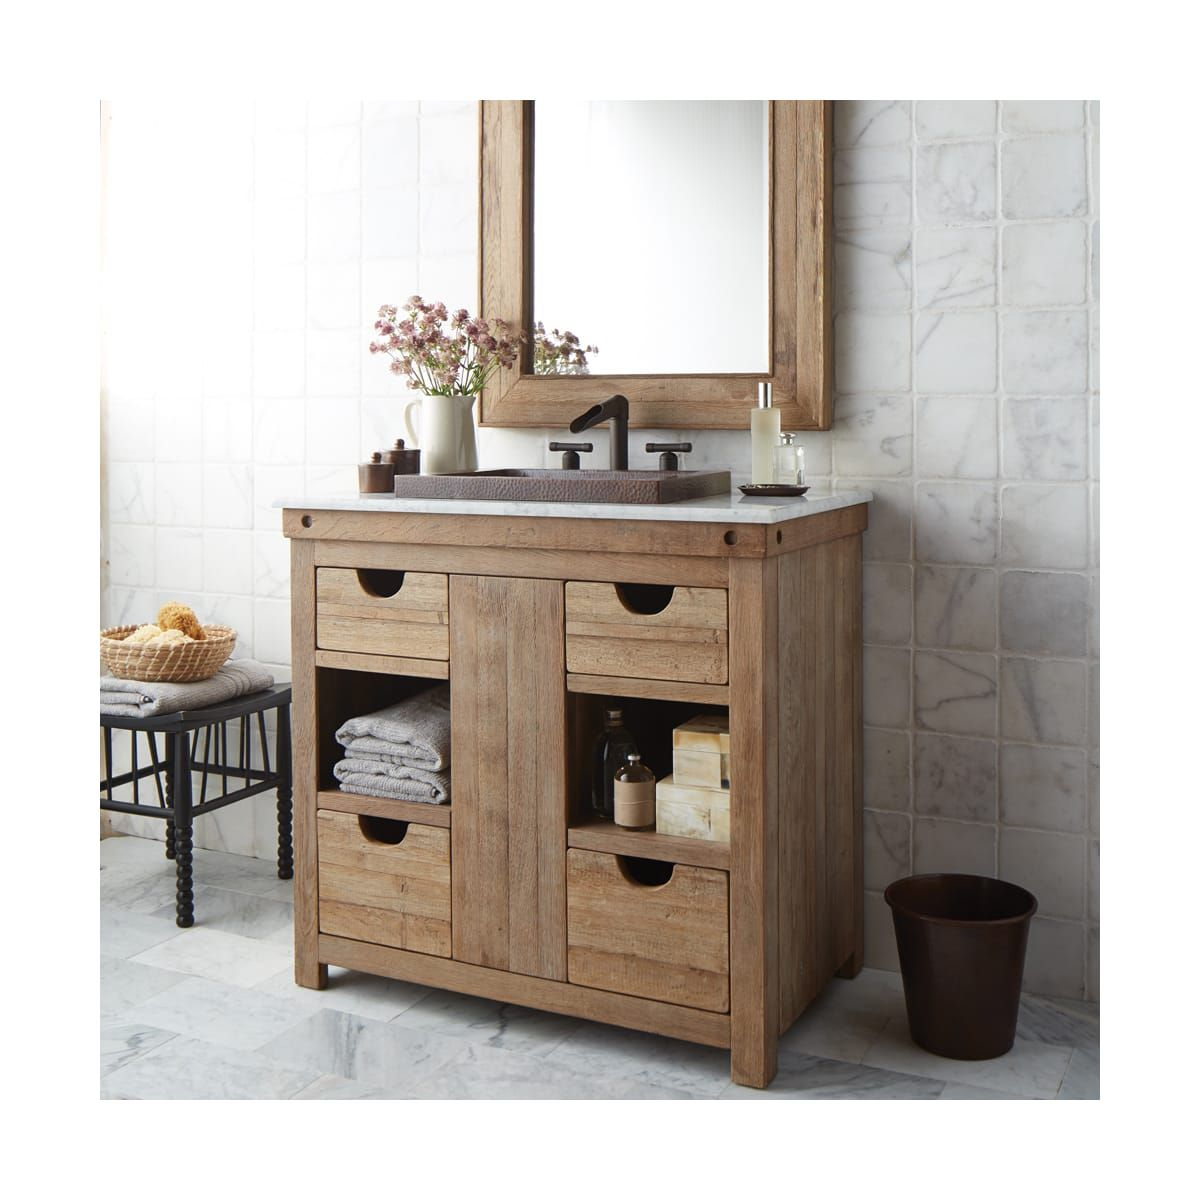 Native Trails Vnw36 Build Com In 2020 Wooden Bathroom Vanity Bathroom Vanity Base Wood Bathroom Vanity